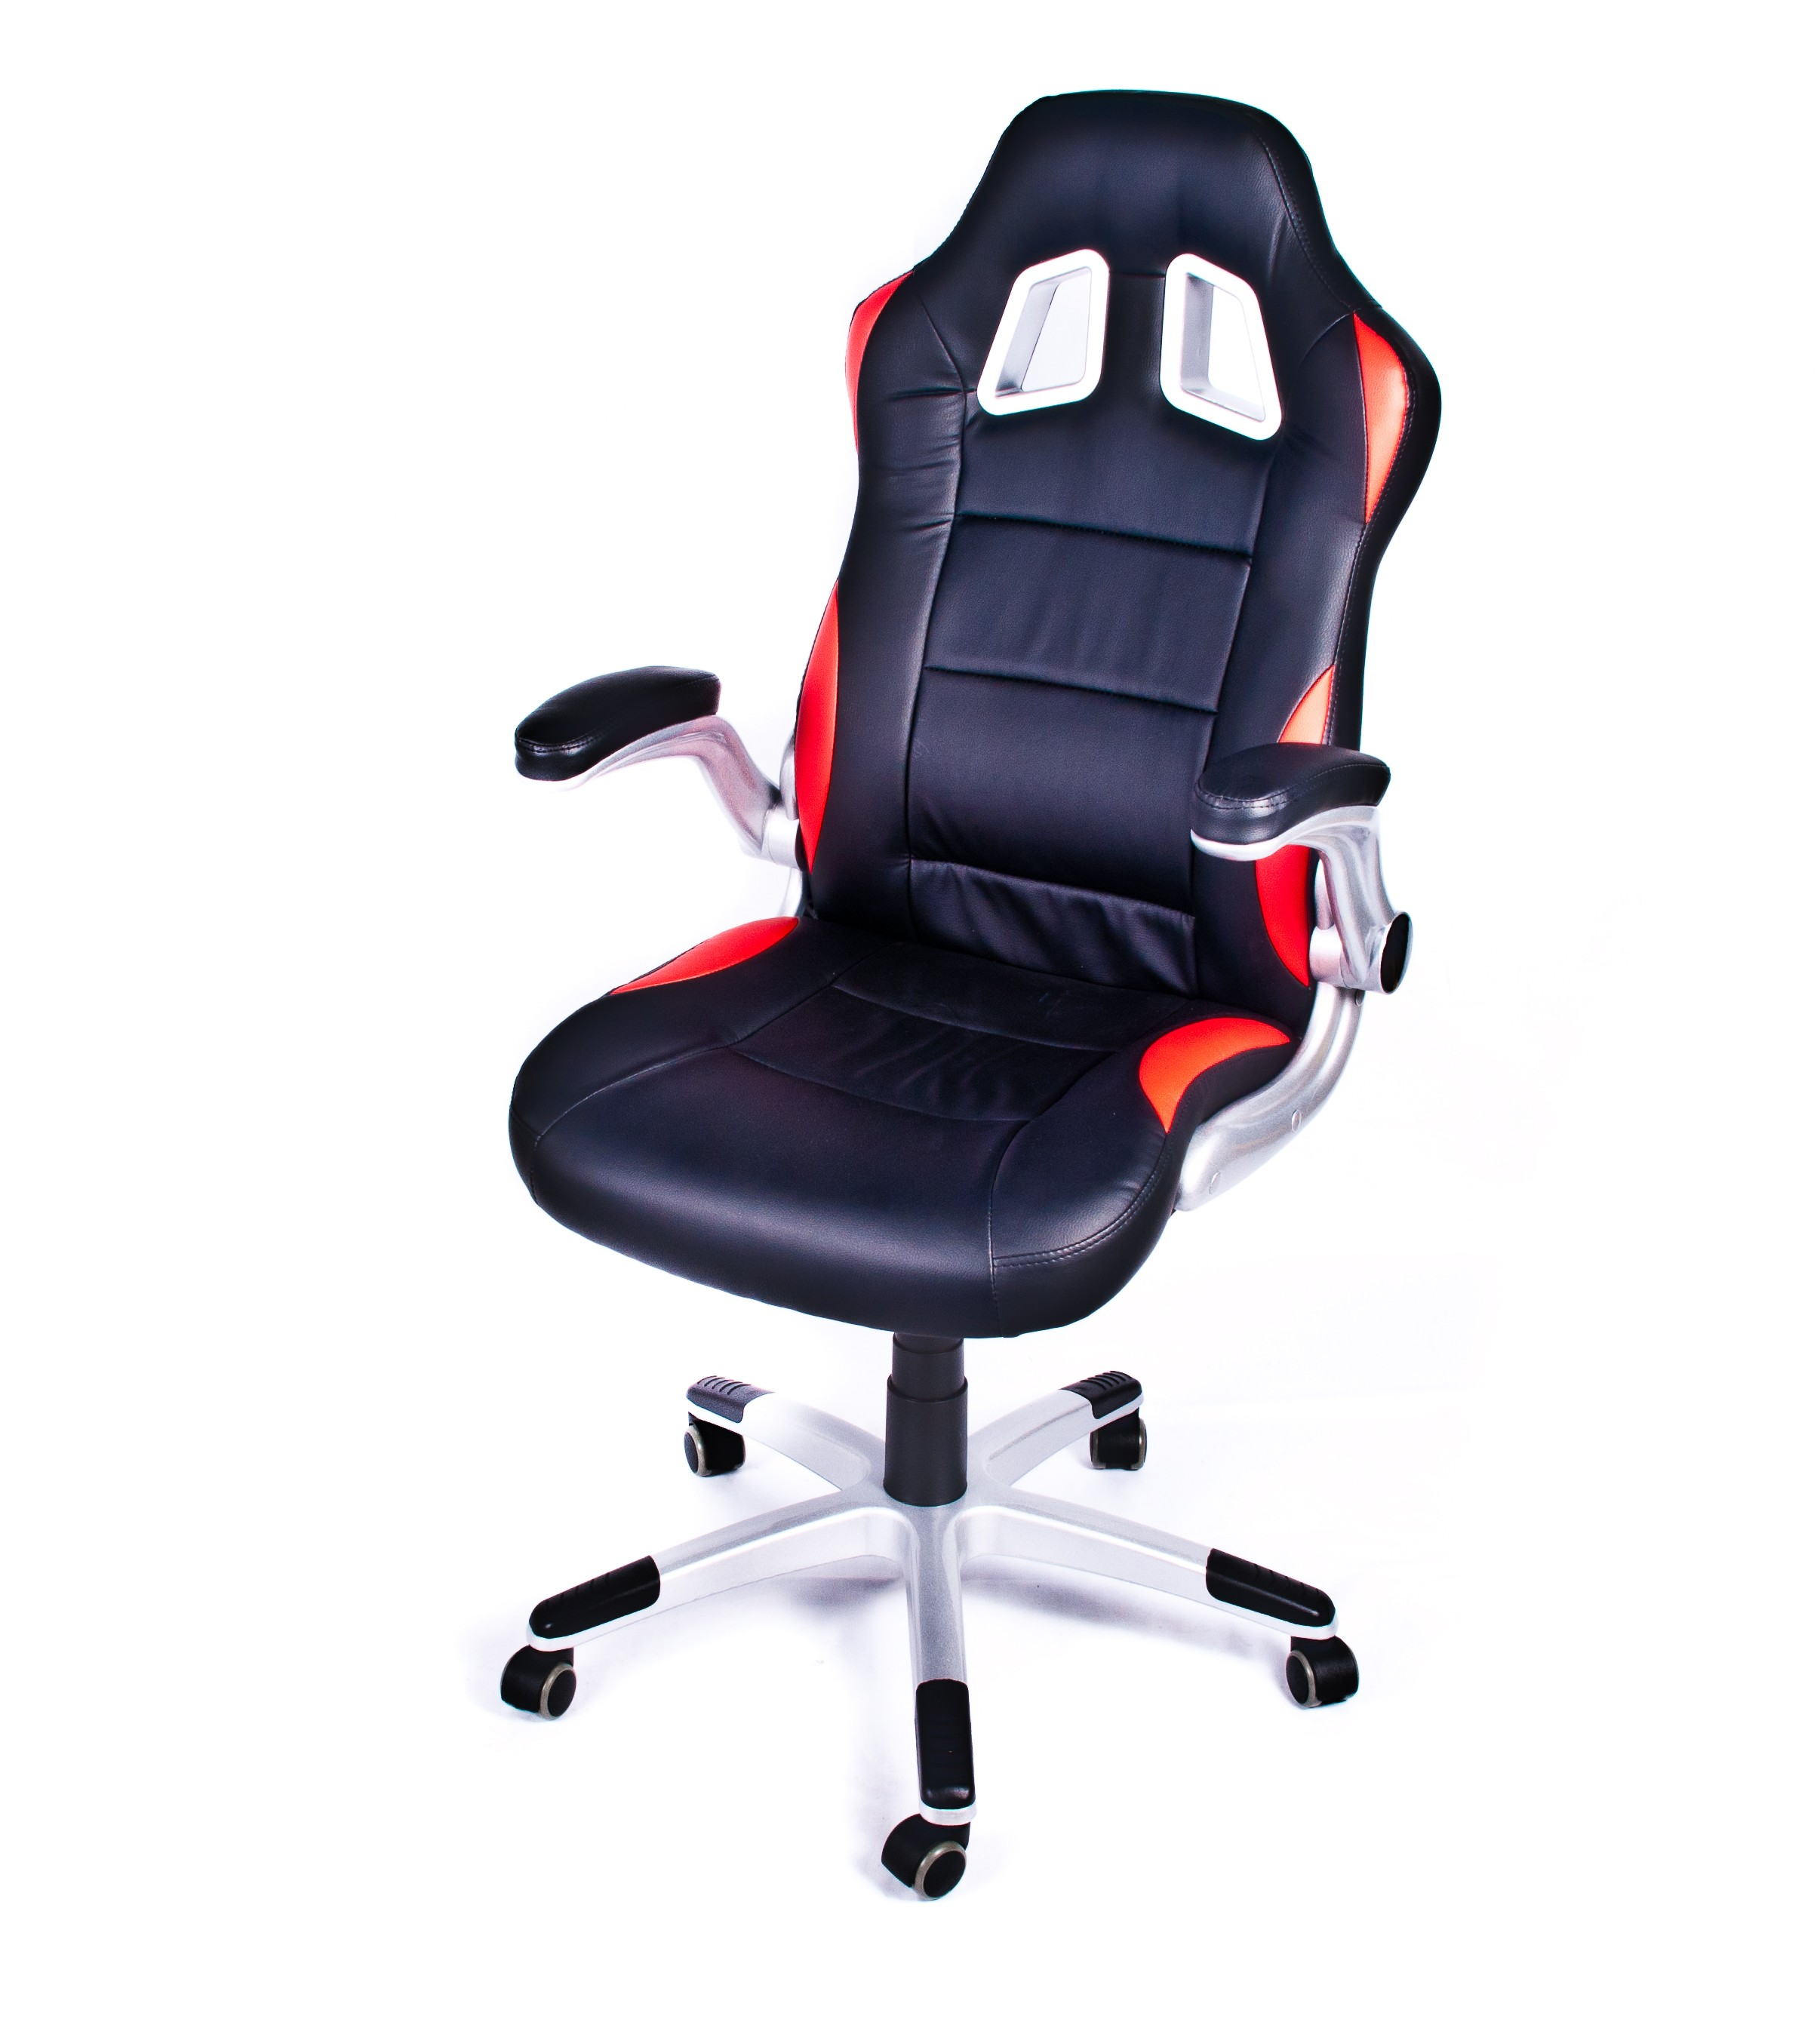 Racing Seat Office Chair Racing Office Chair Top Blog For Chair Review